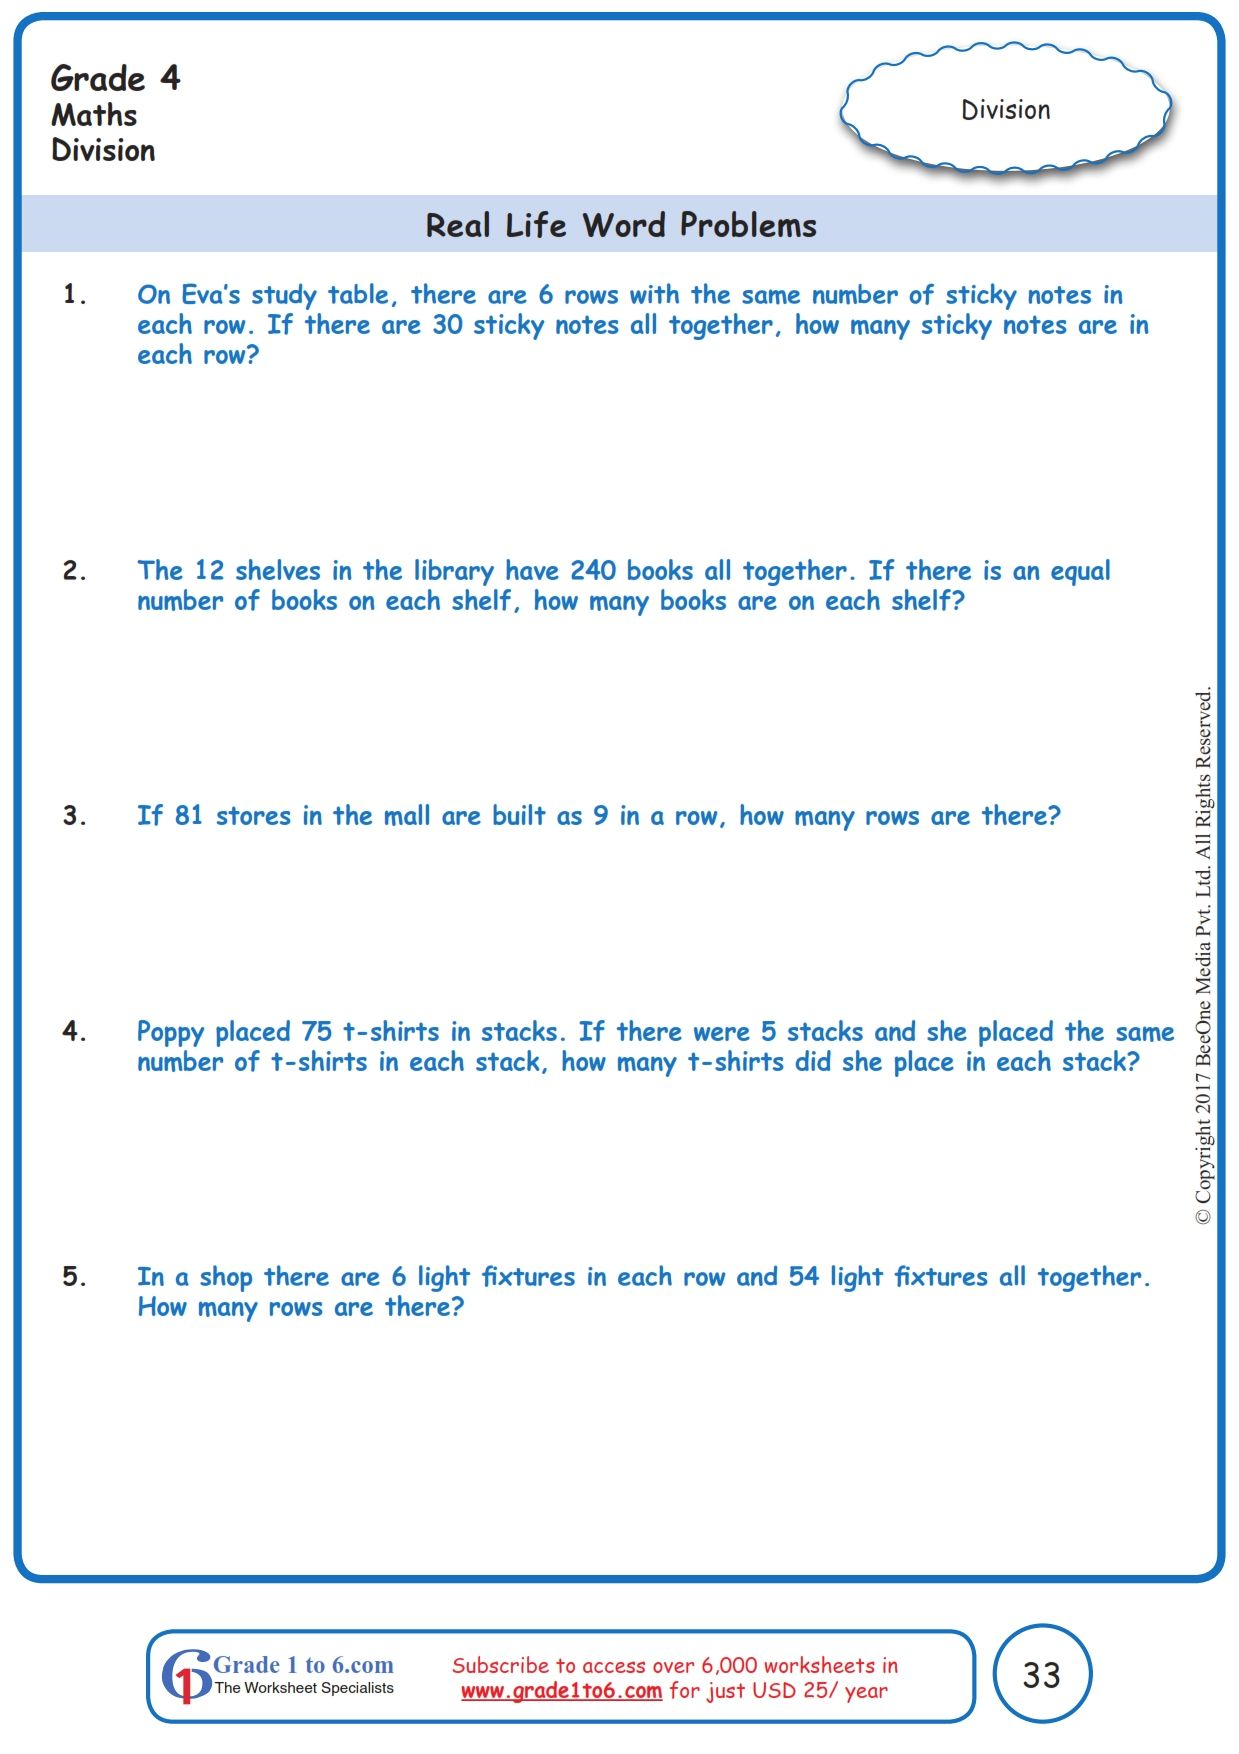 Pin On Grade 4 Math Worksheets Pyp Cbse Icse Common Core